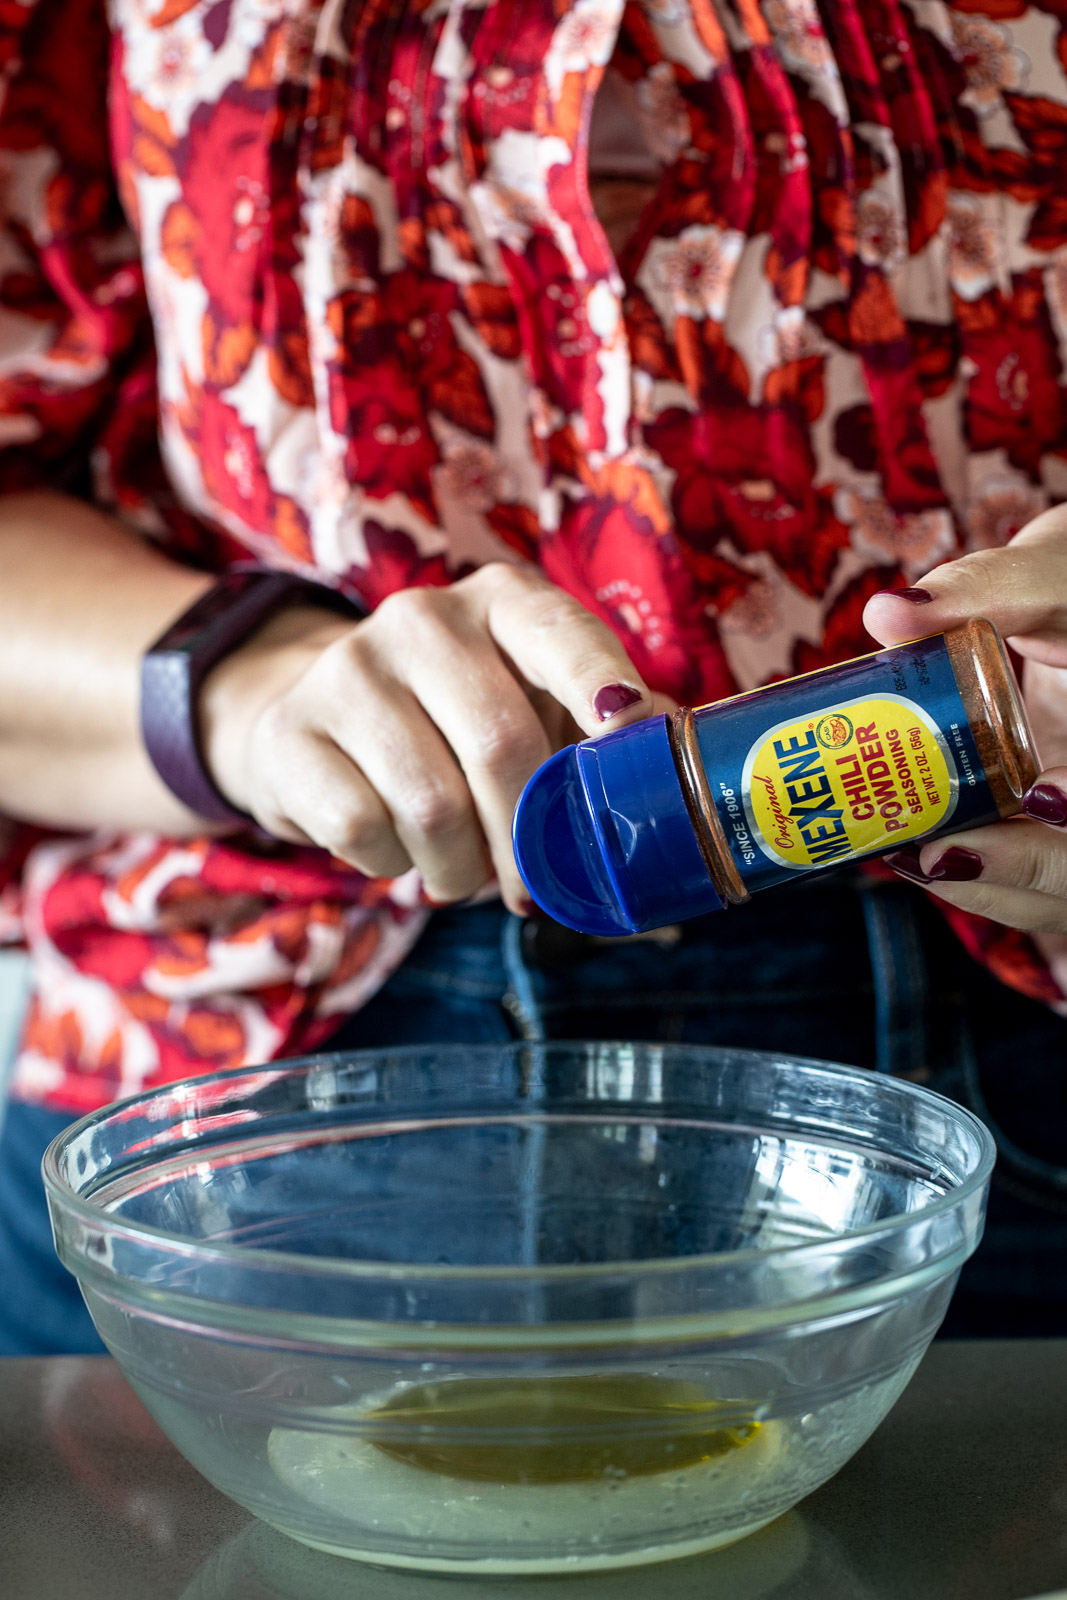 Woman adding chili powder to a marinade in a glass bowl.